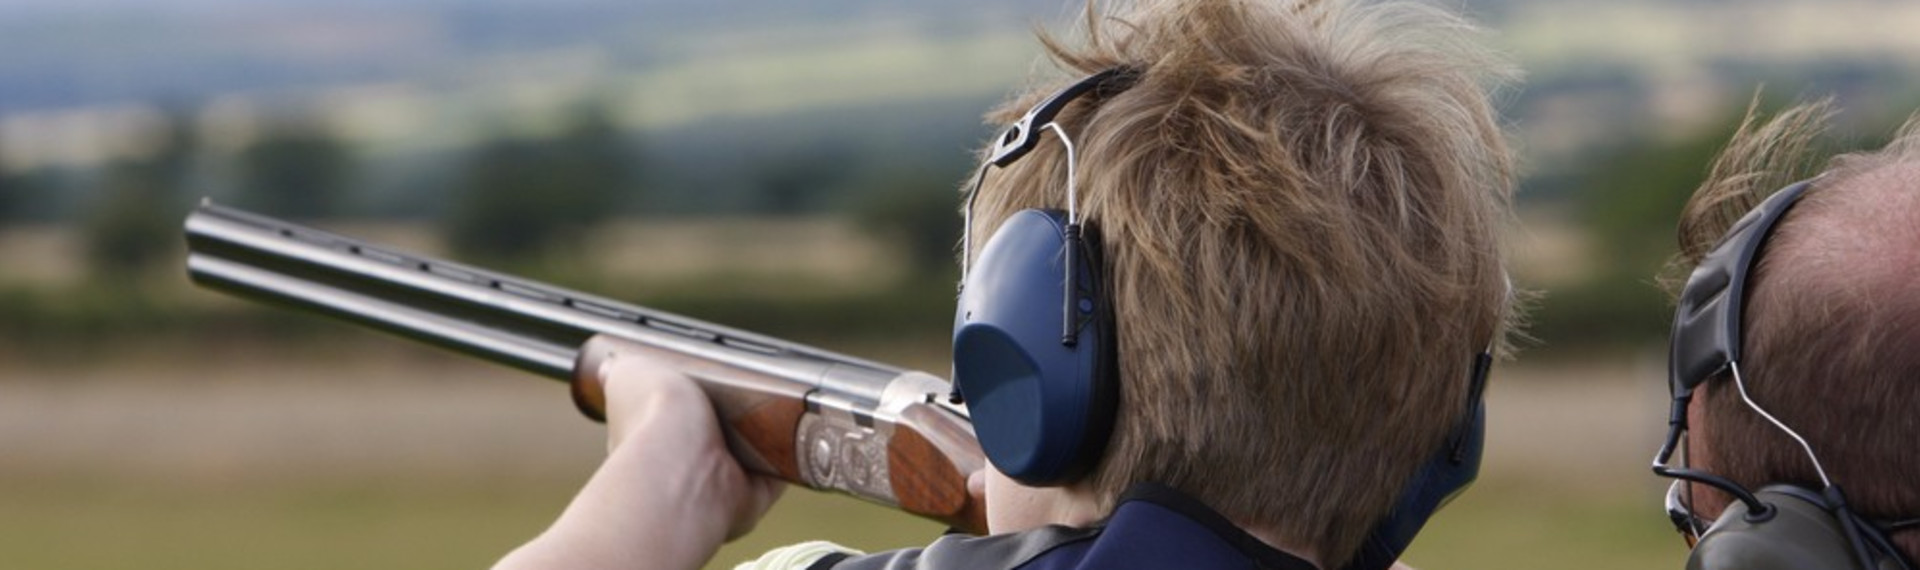 Gdansk Clay Pigeon Shooting image